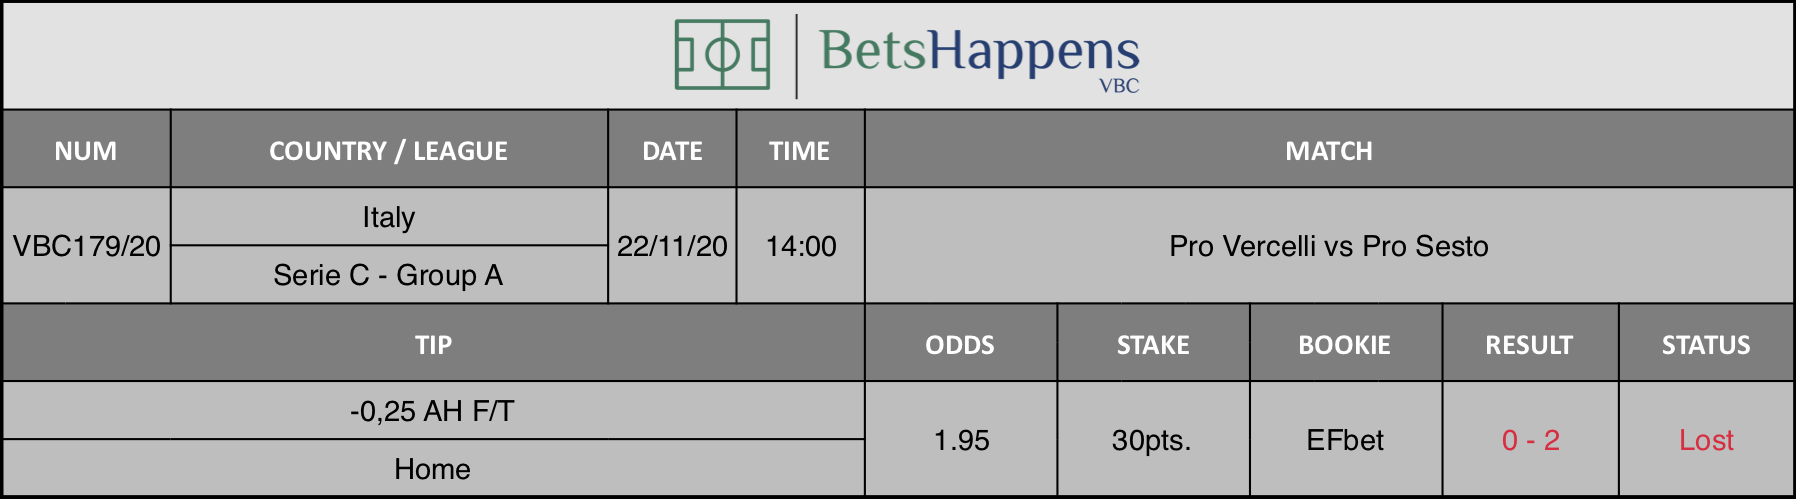 Results of our tip for the Pro Vercelli vs Pro Sesto match where -0,25 AH F/T Home is recommended.